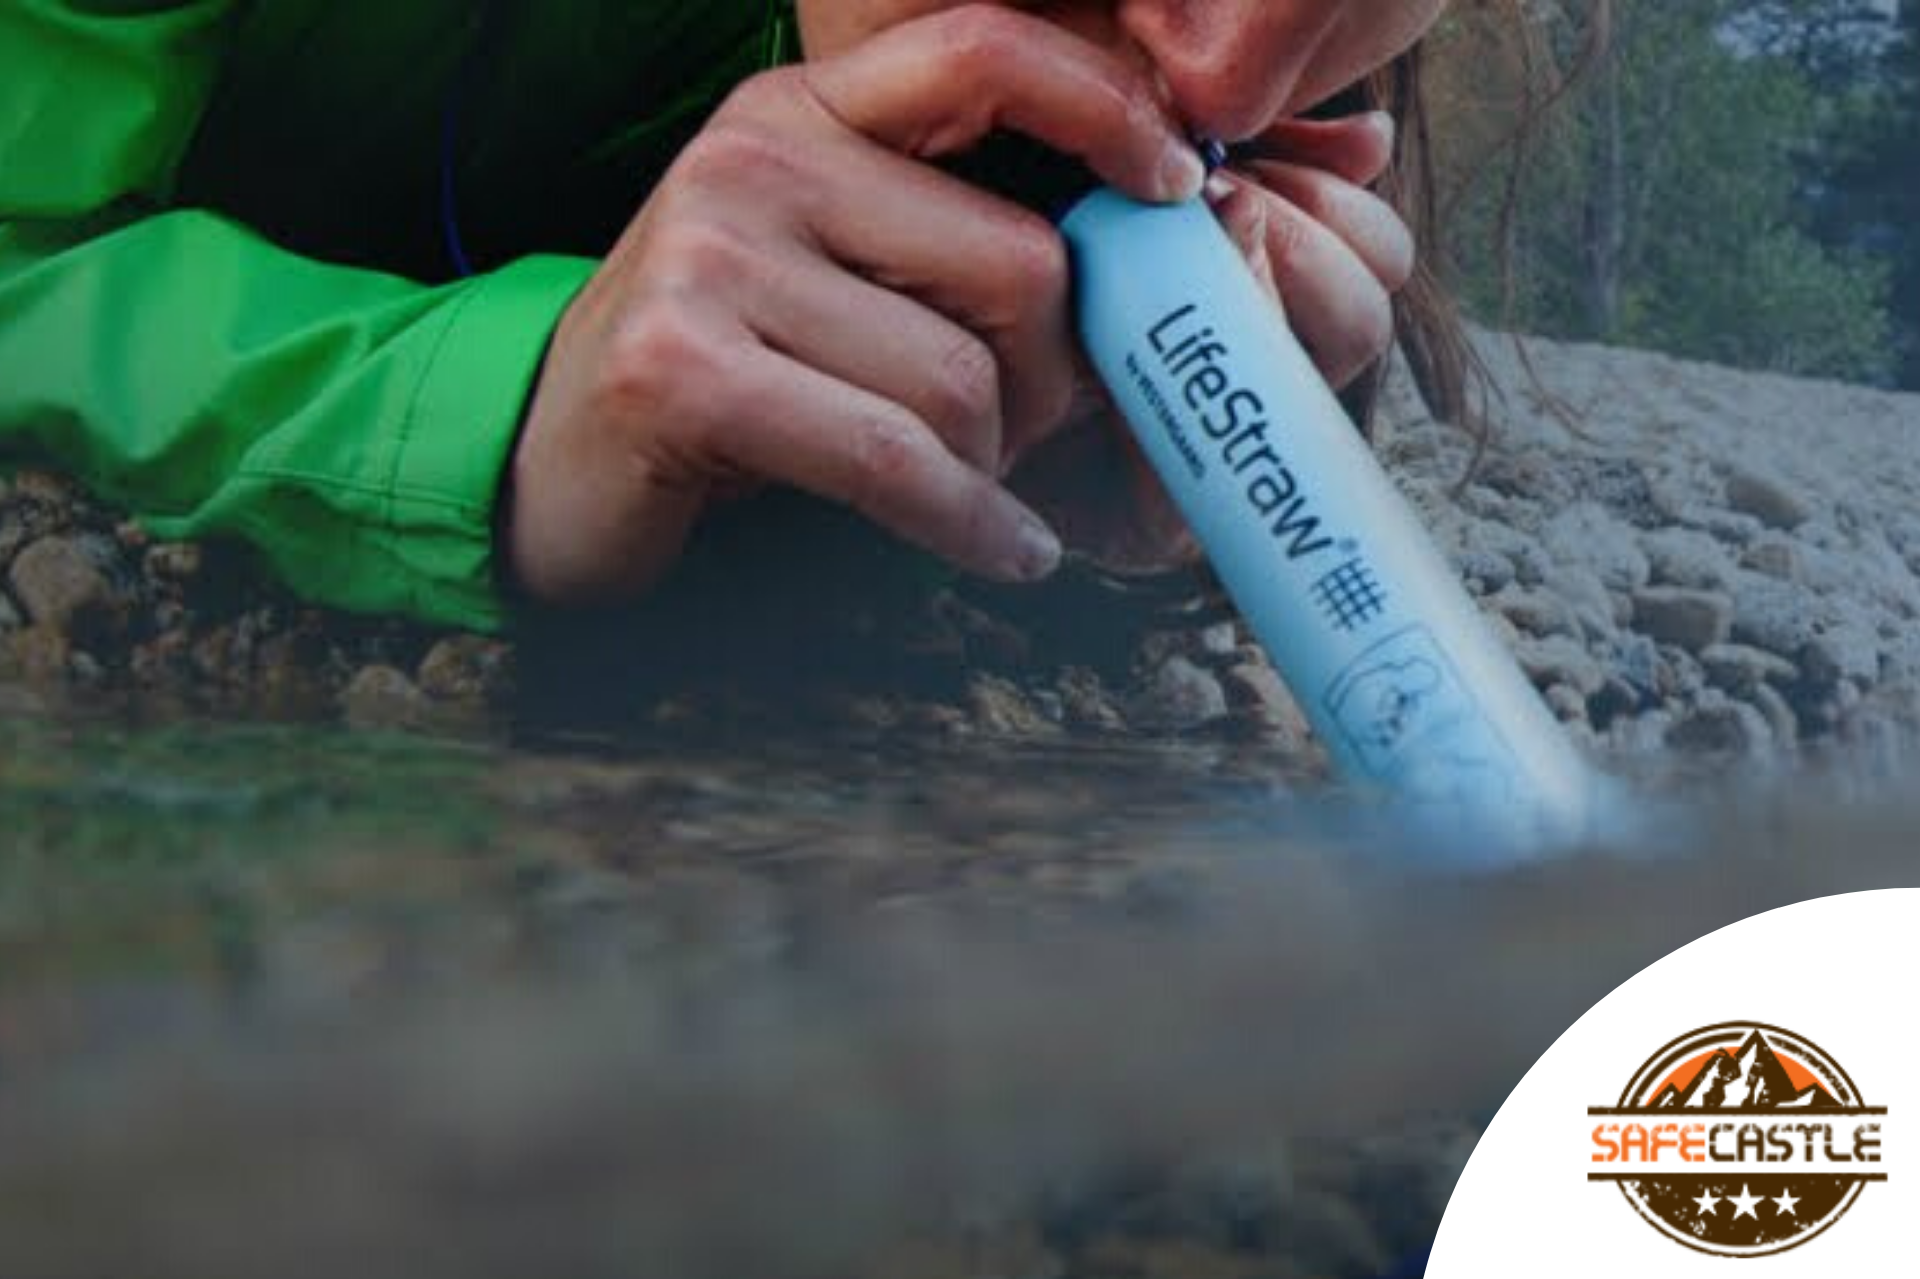 PORTABLE WATER FILTER FOR EMERGENCY